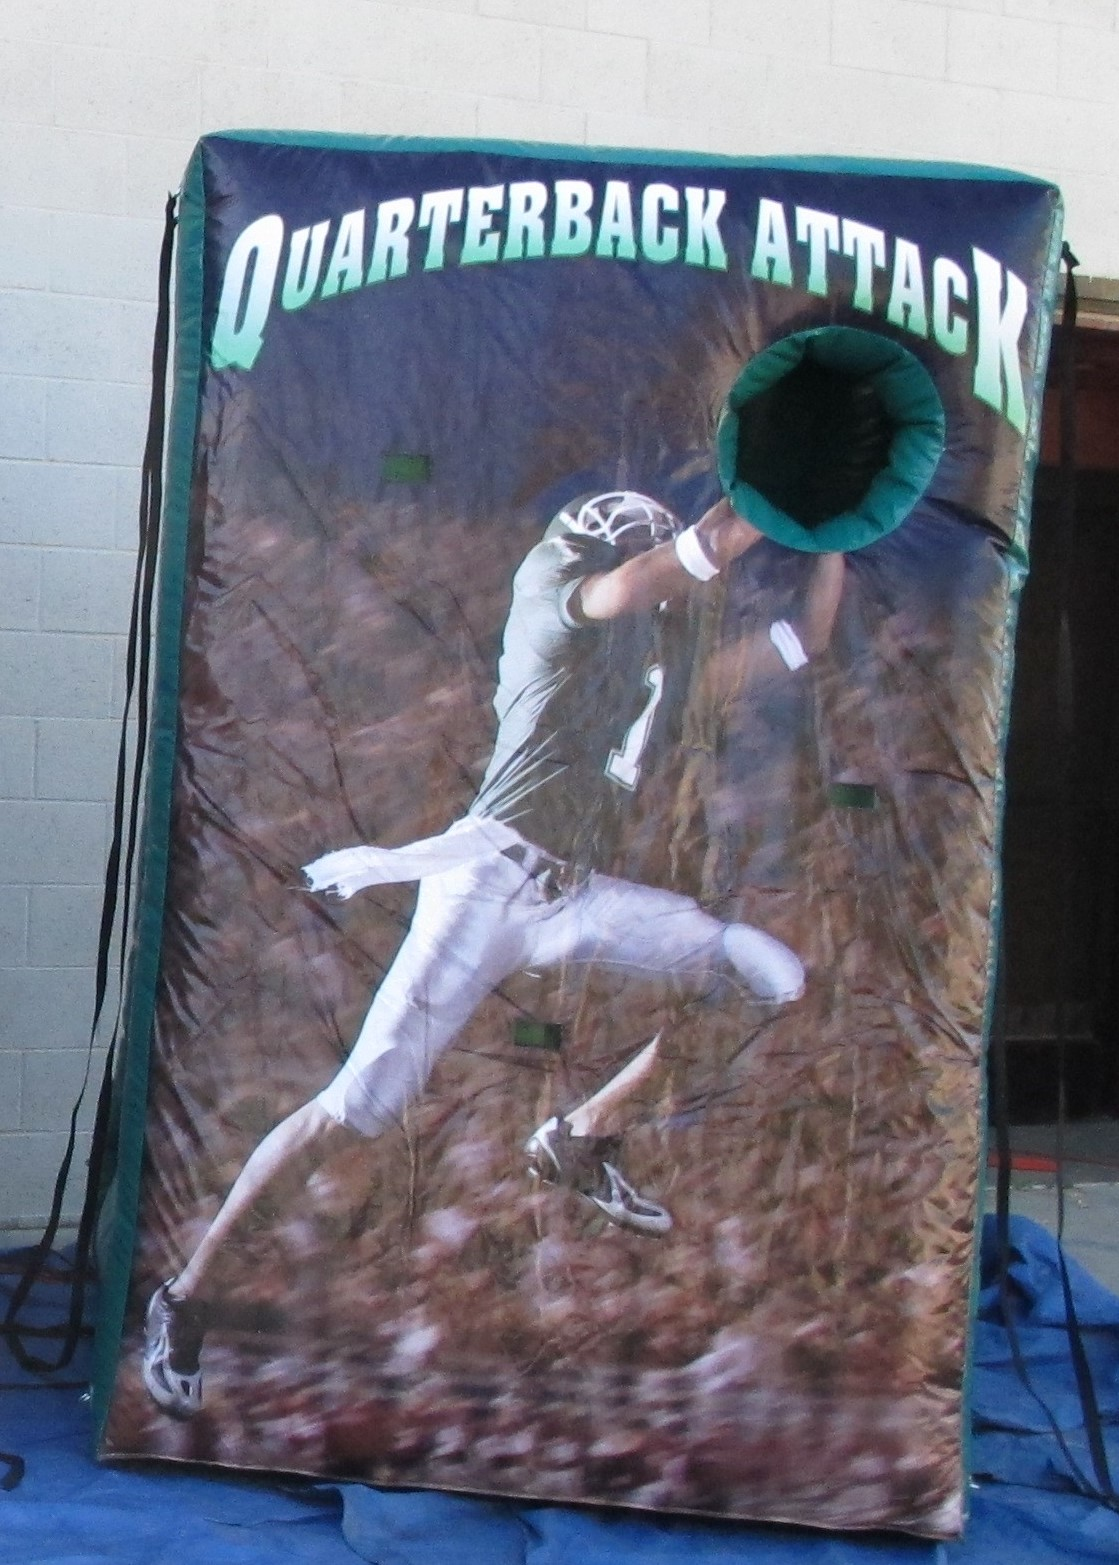 QB Attack Football Toss Inflate